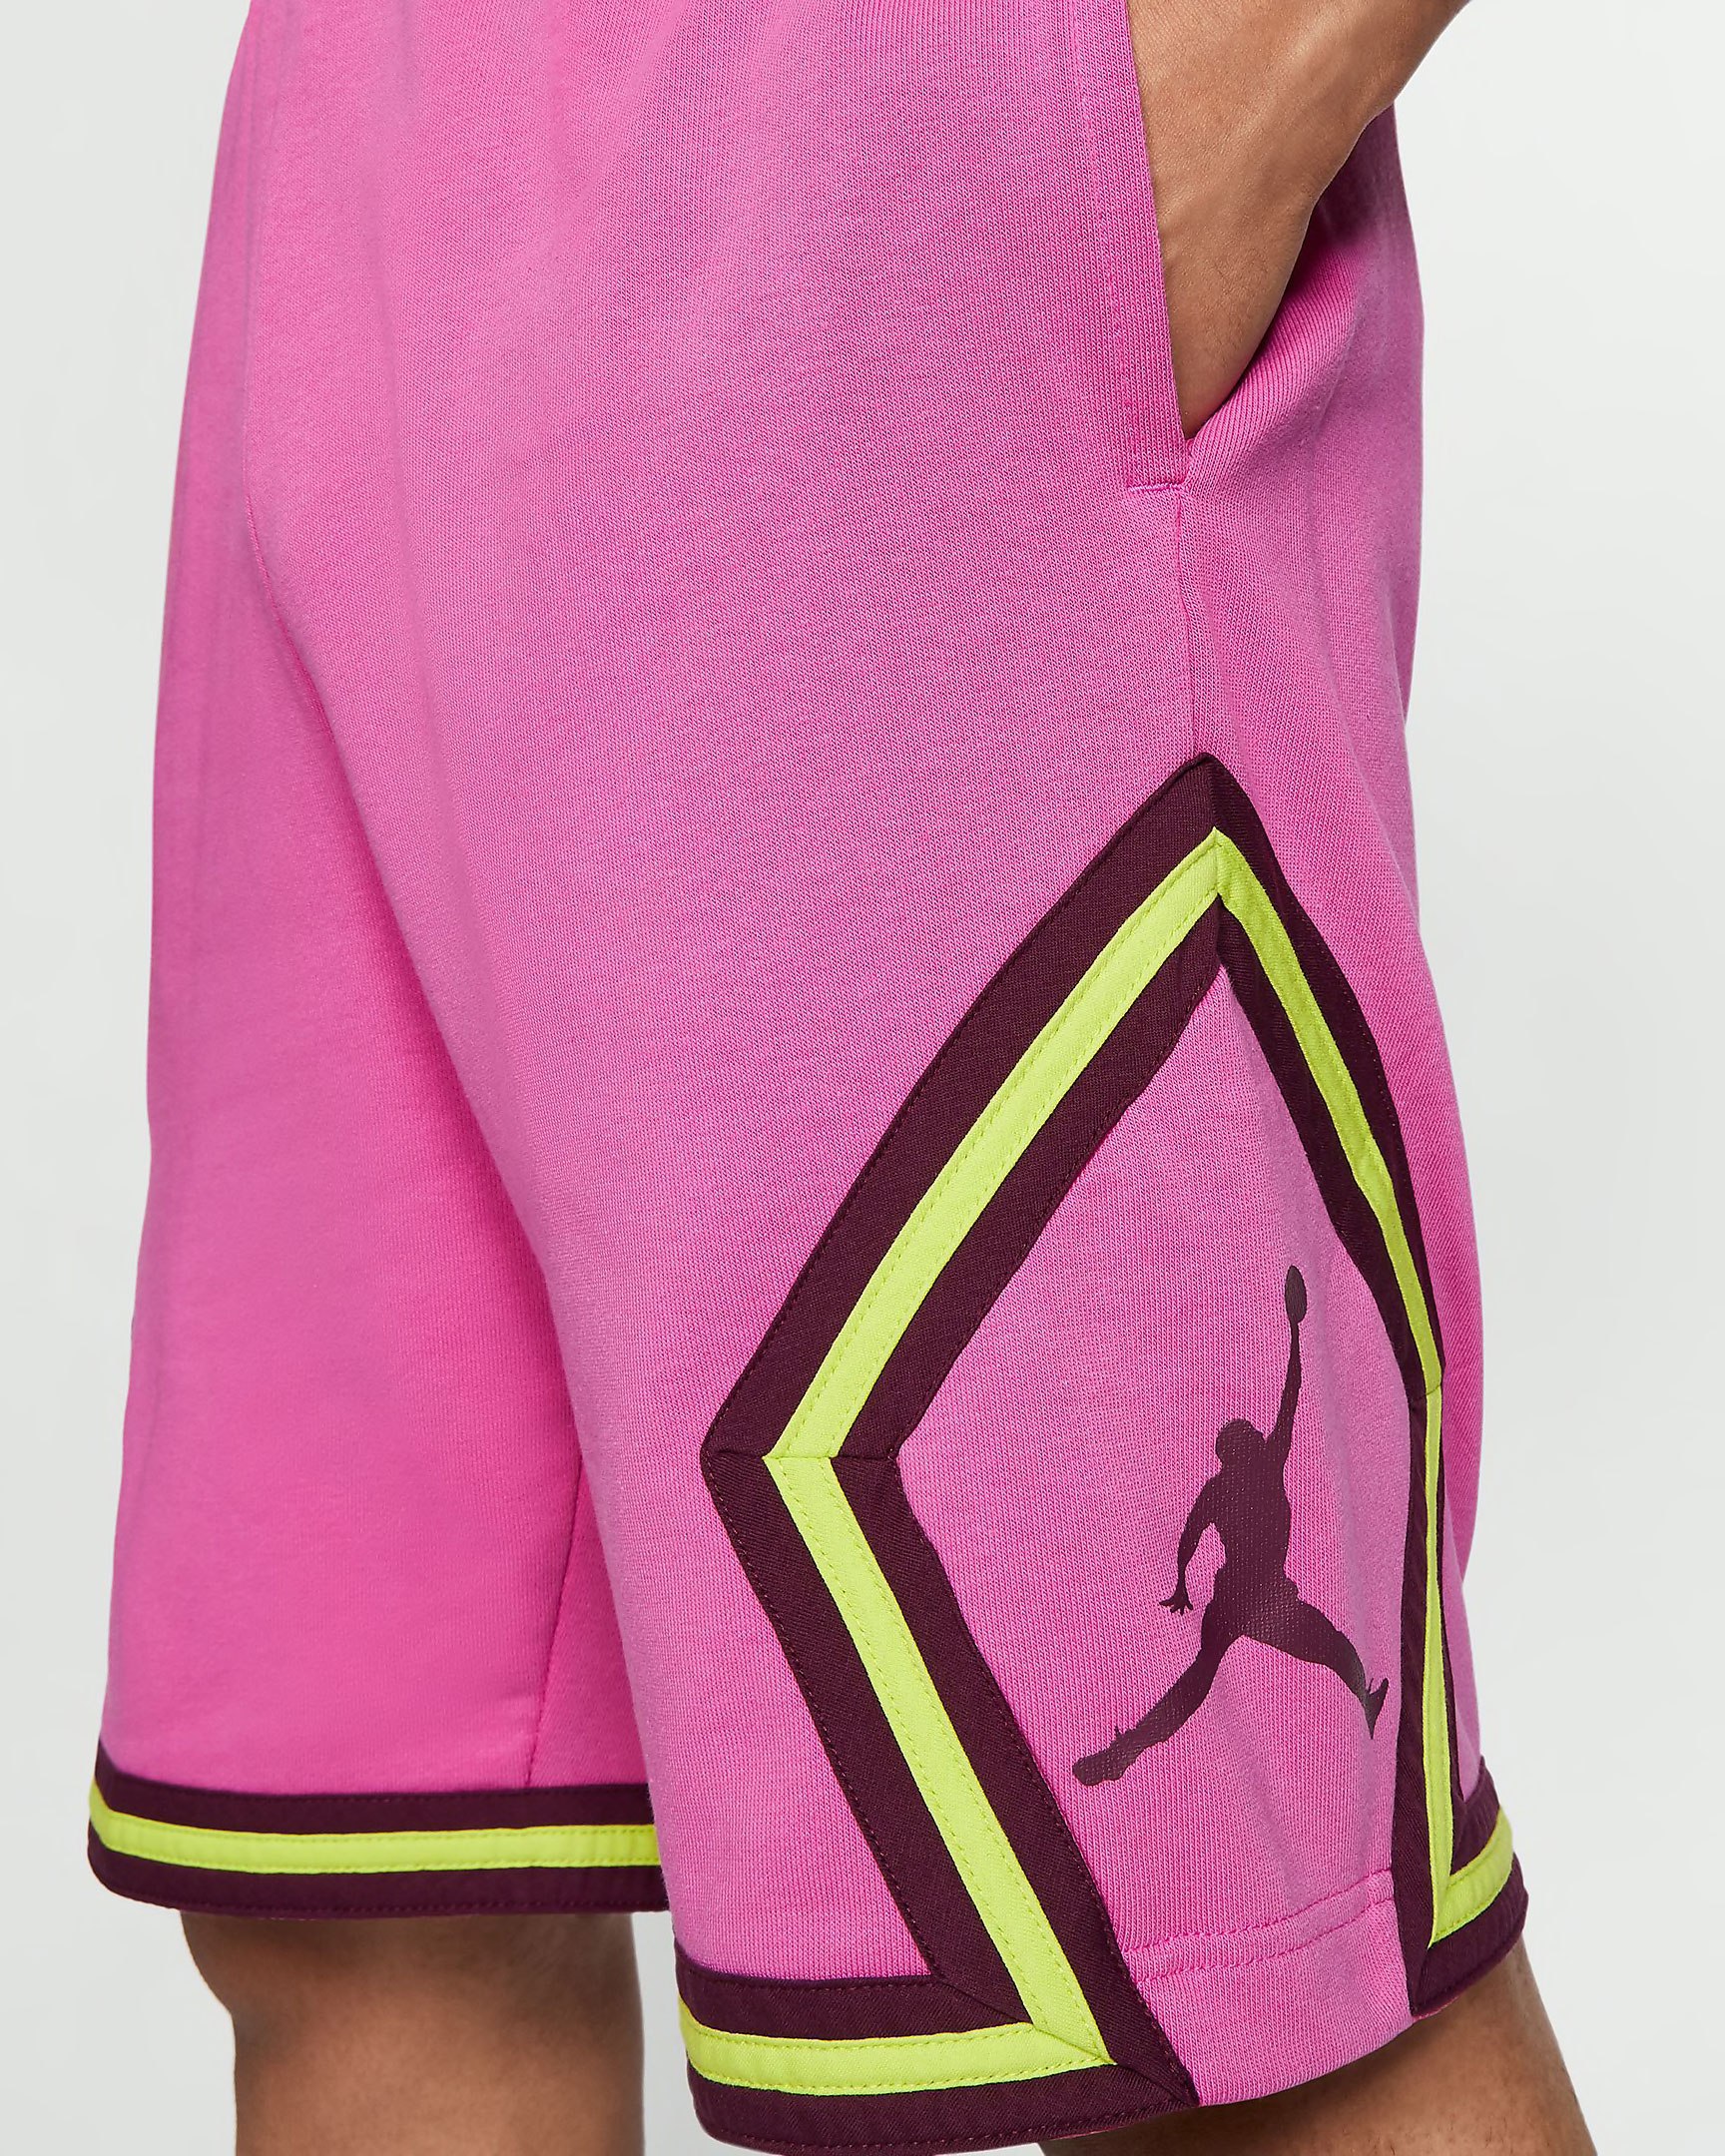 jordan-jumpman-diamond-shorts-fuchsia-cyber-1